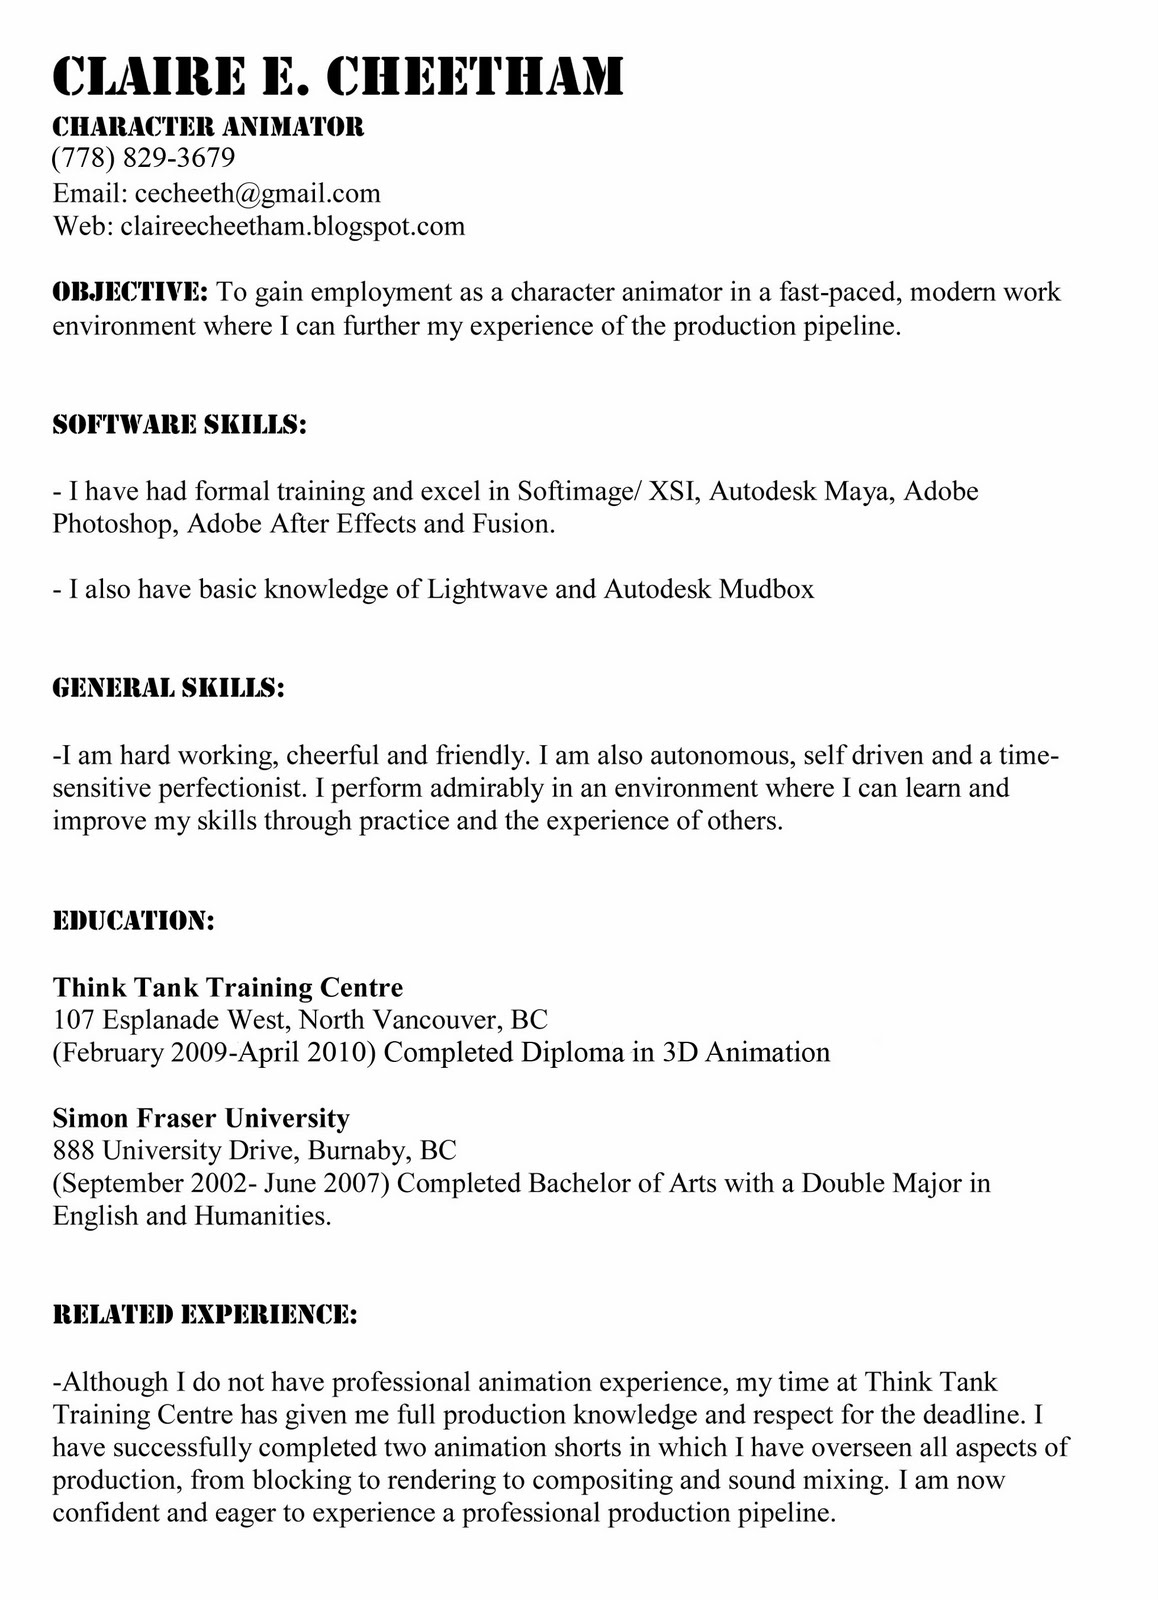 Nice 1 Inch Circle Template Tall 1 Page Resume Format For Freshers Round 10x13 Envelope Template 2 Page Resume Template Word Youthful 20 Degree Angle Template Coloured3 Type Of Resumes Good Interior Design Resume   Vosvete